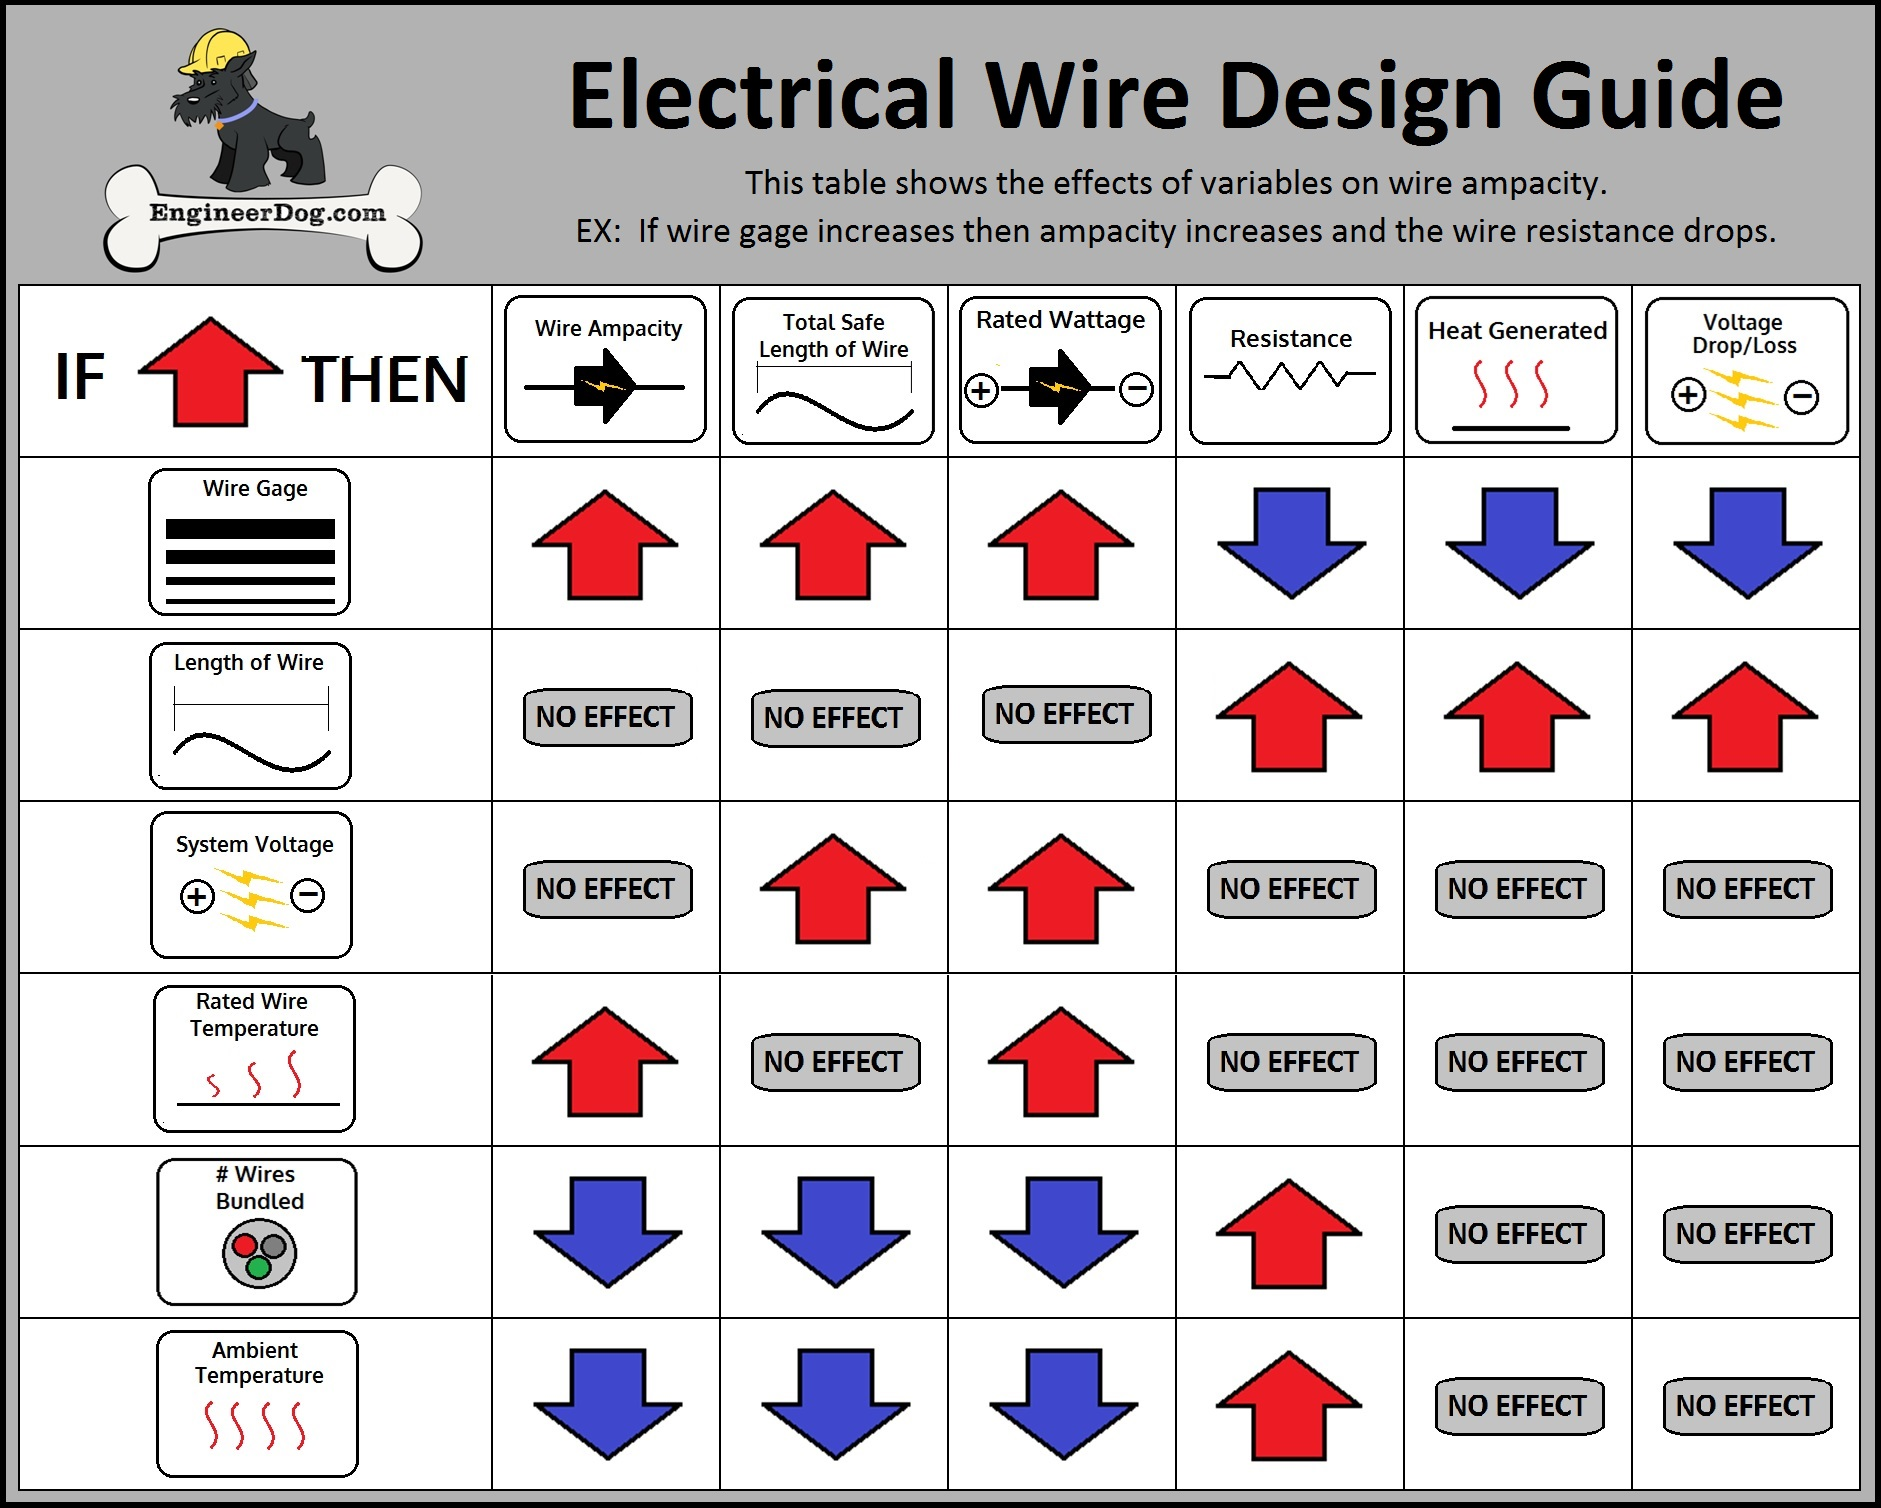 Electronic wire gauge wiring info free electrical wire gauge sizing calculator engineerdog rh engineerdog com electric wire gauge diameter chart electric greentooth Gallery